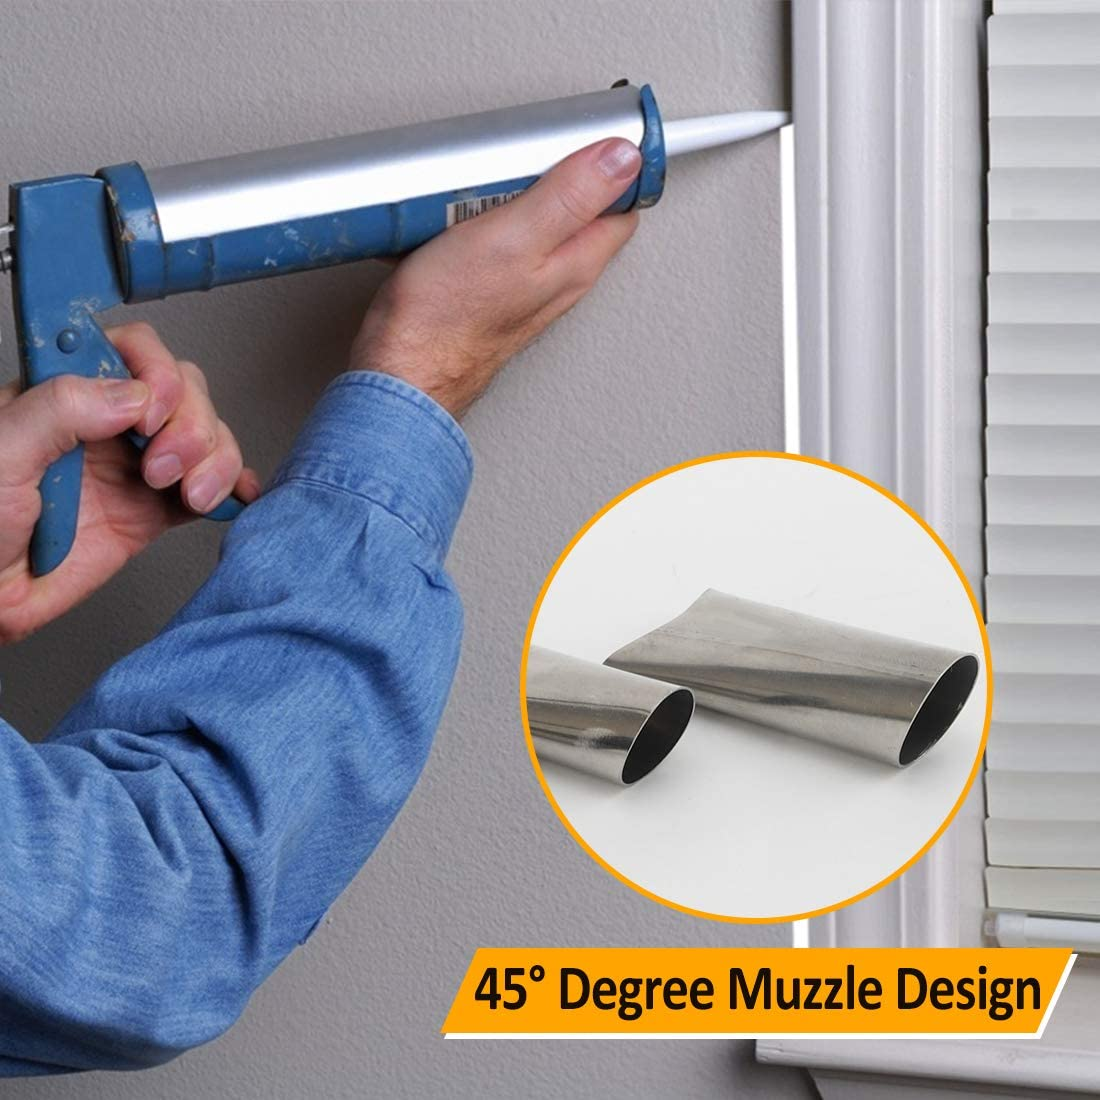 Reusable Stainless Steel Caulking Nozzle